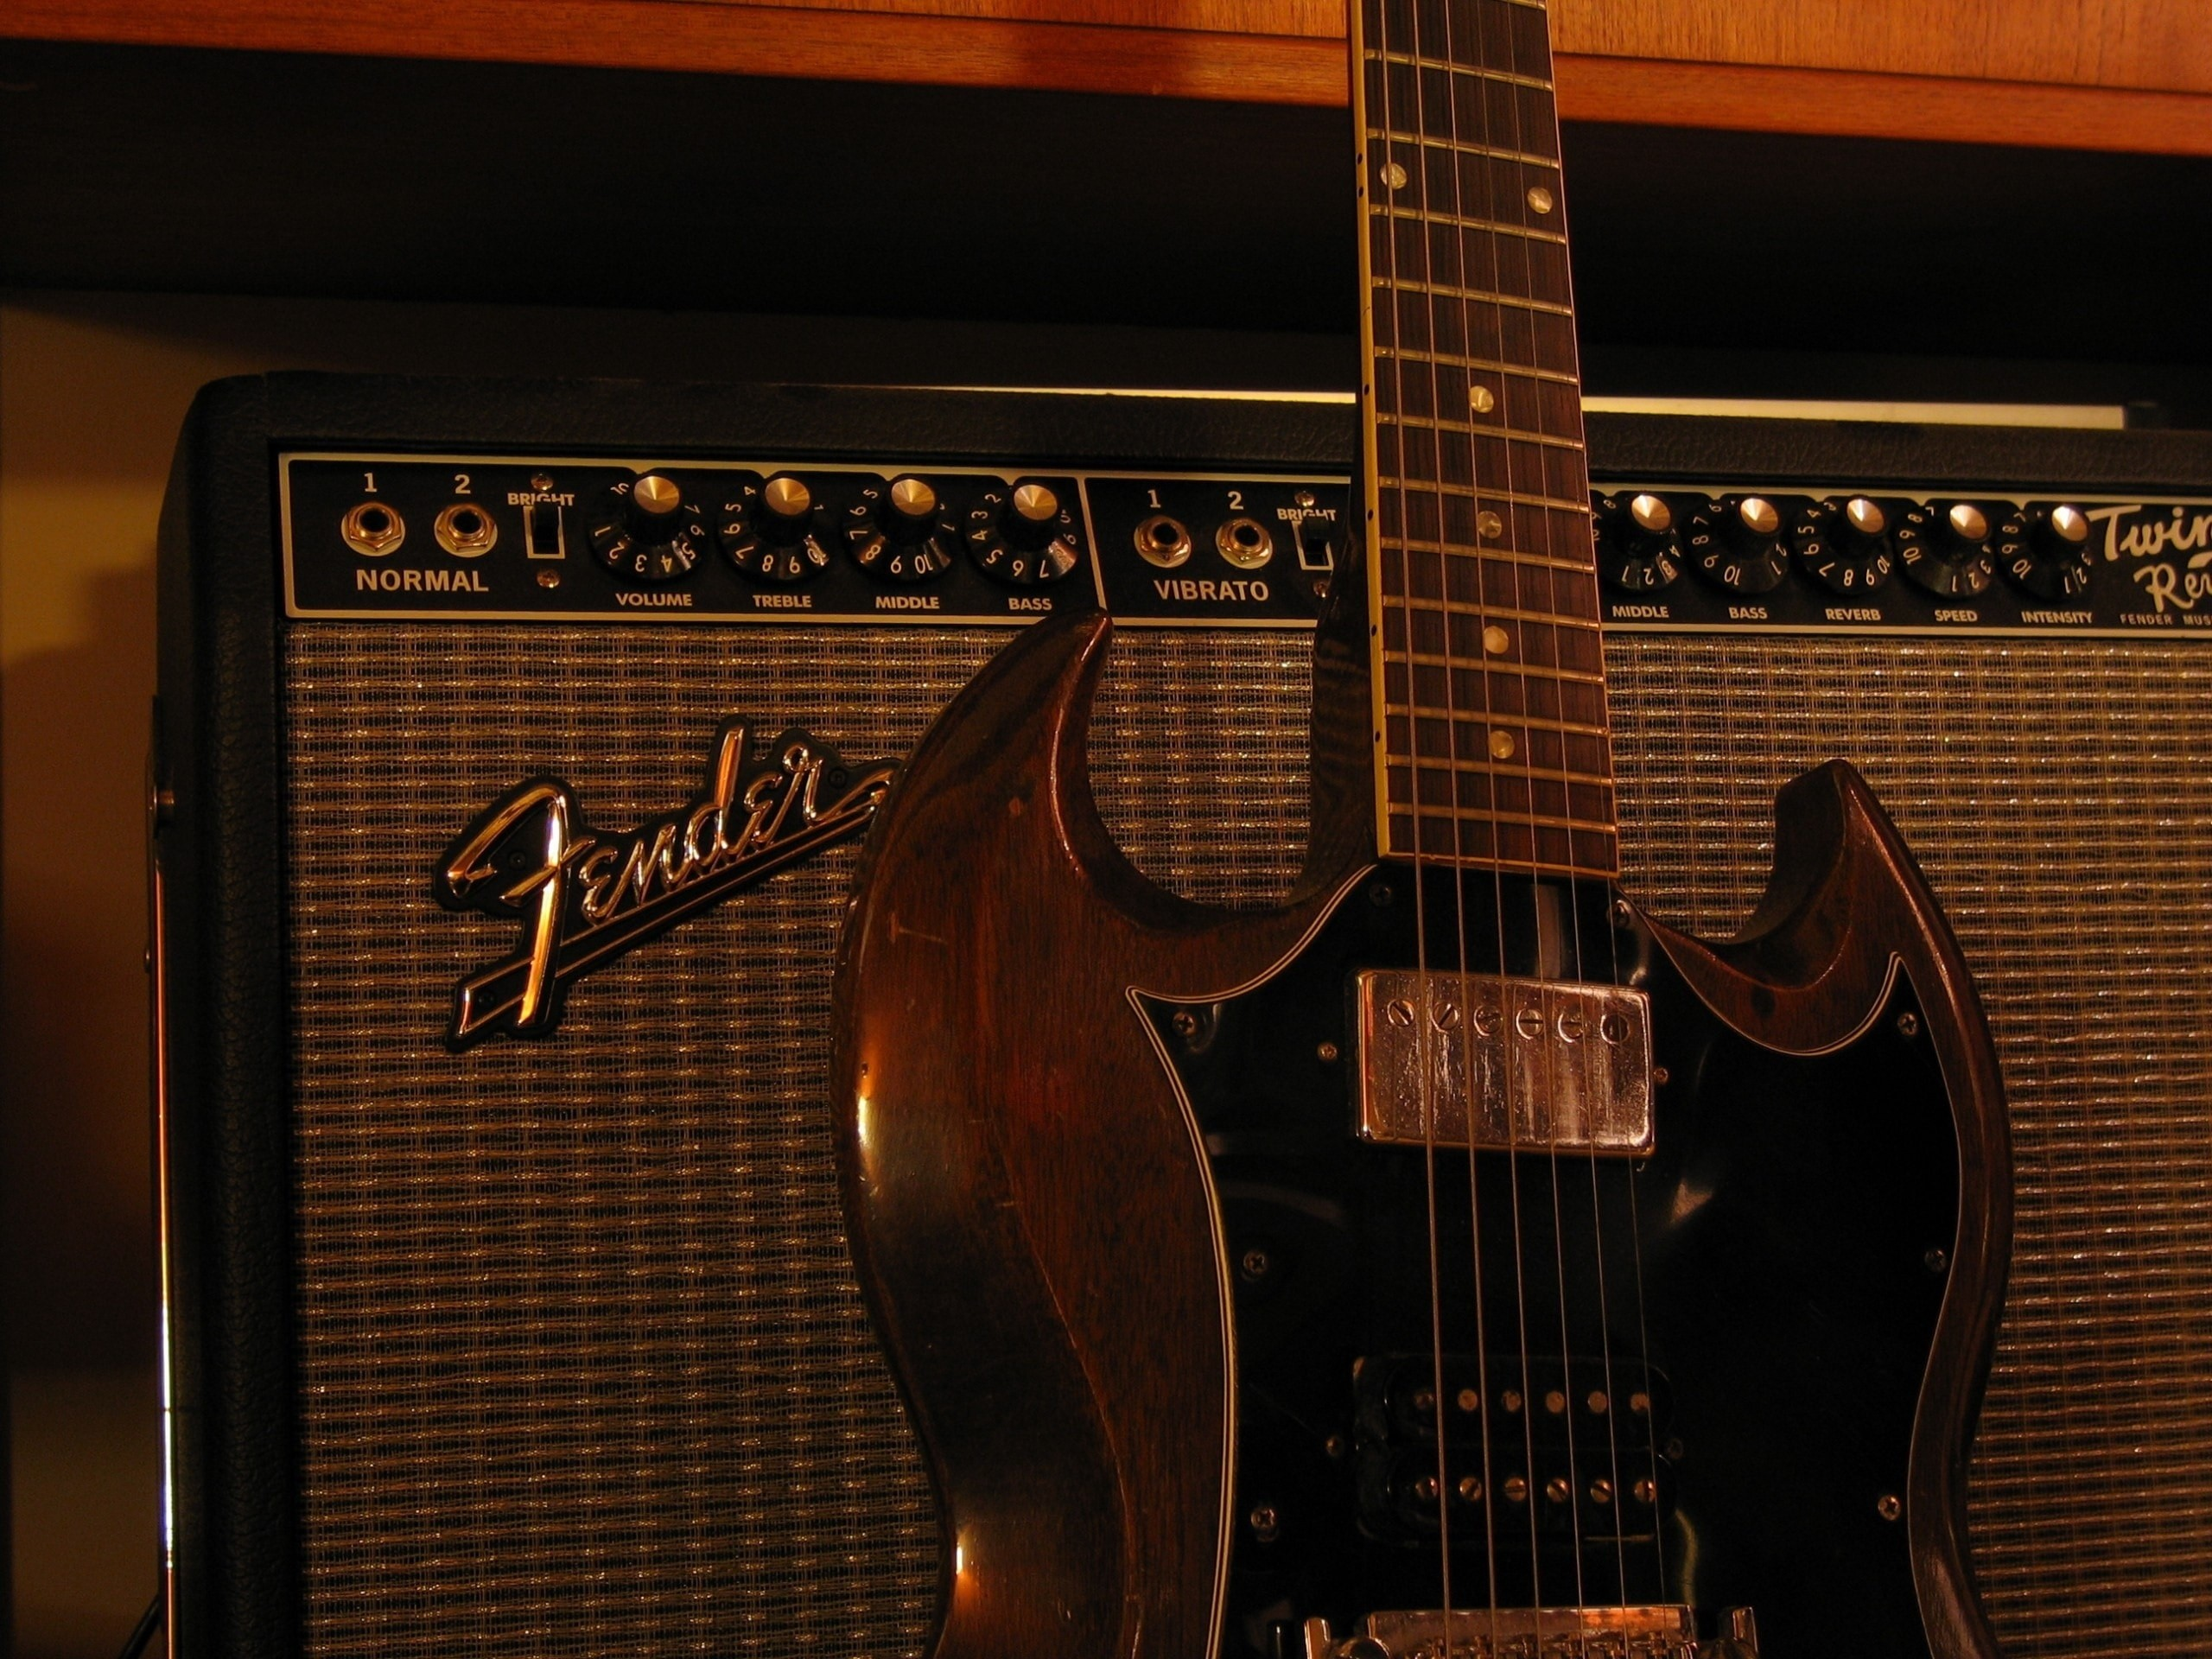 fender guitar wallpaper 59 images